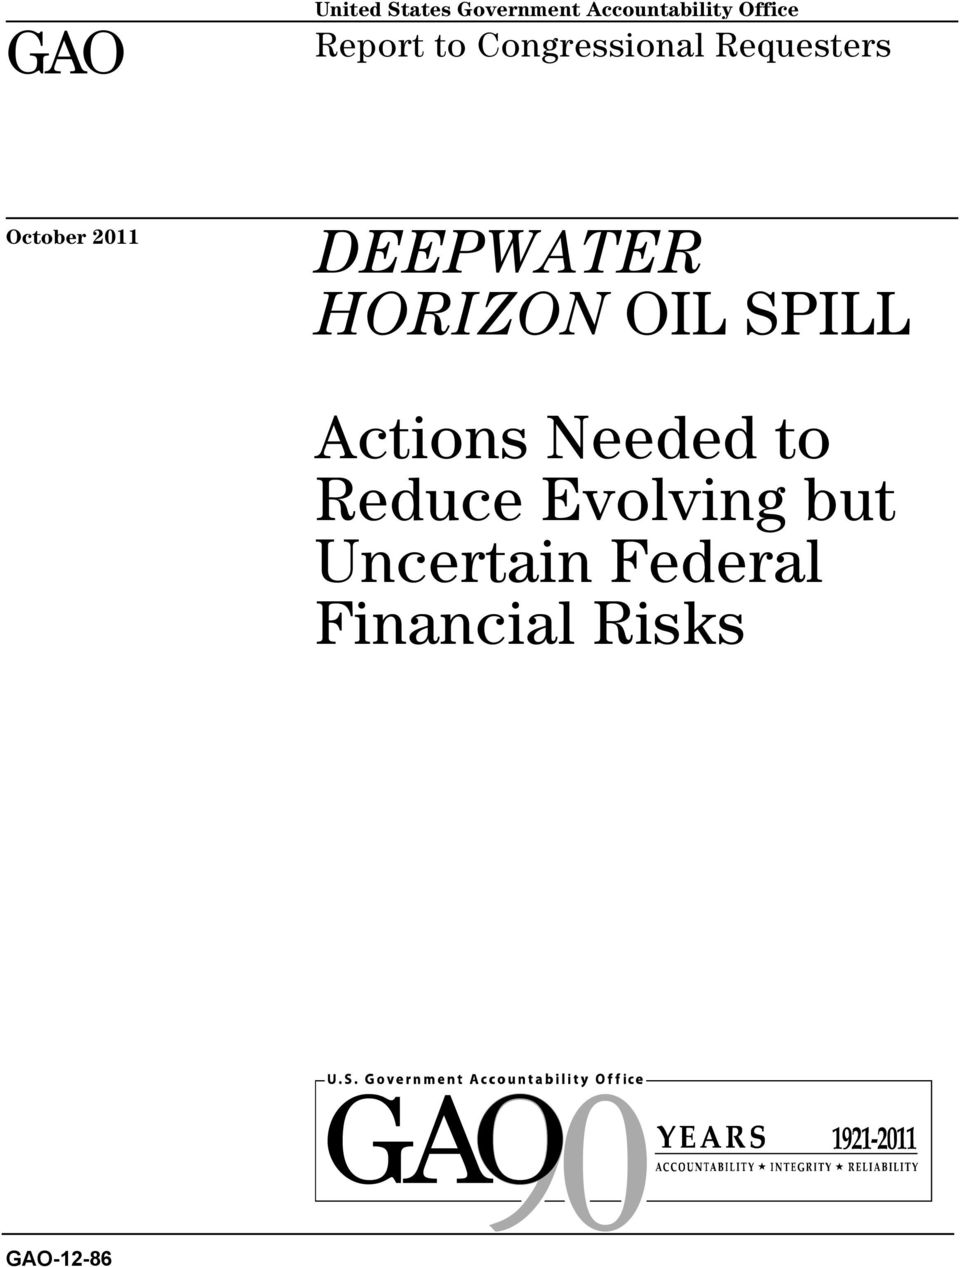 DEEPWATER HORIZON OIL SPILL Actions Needed to